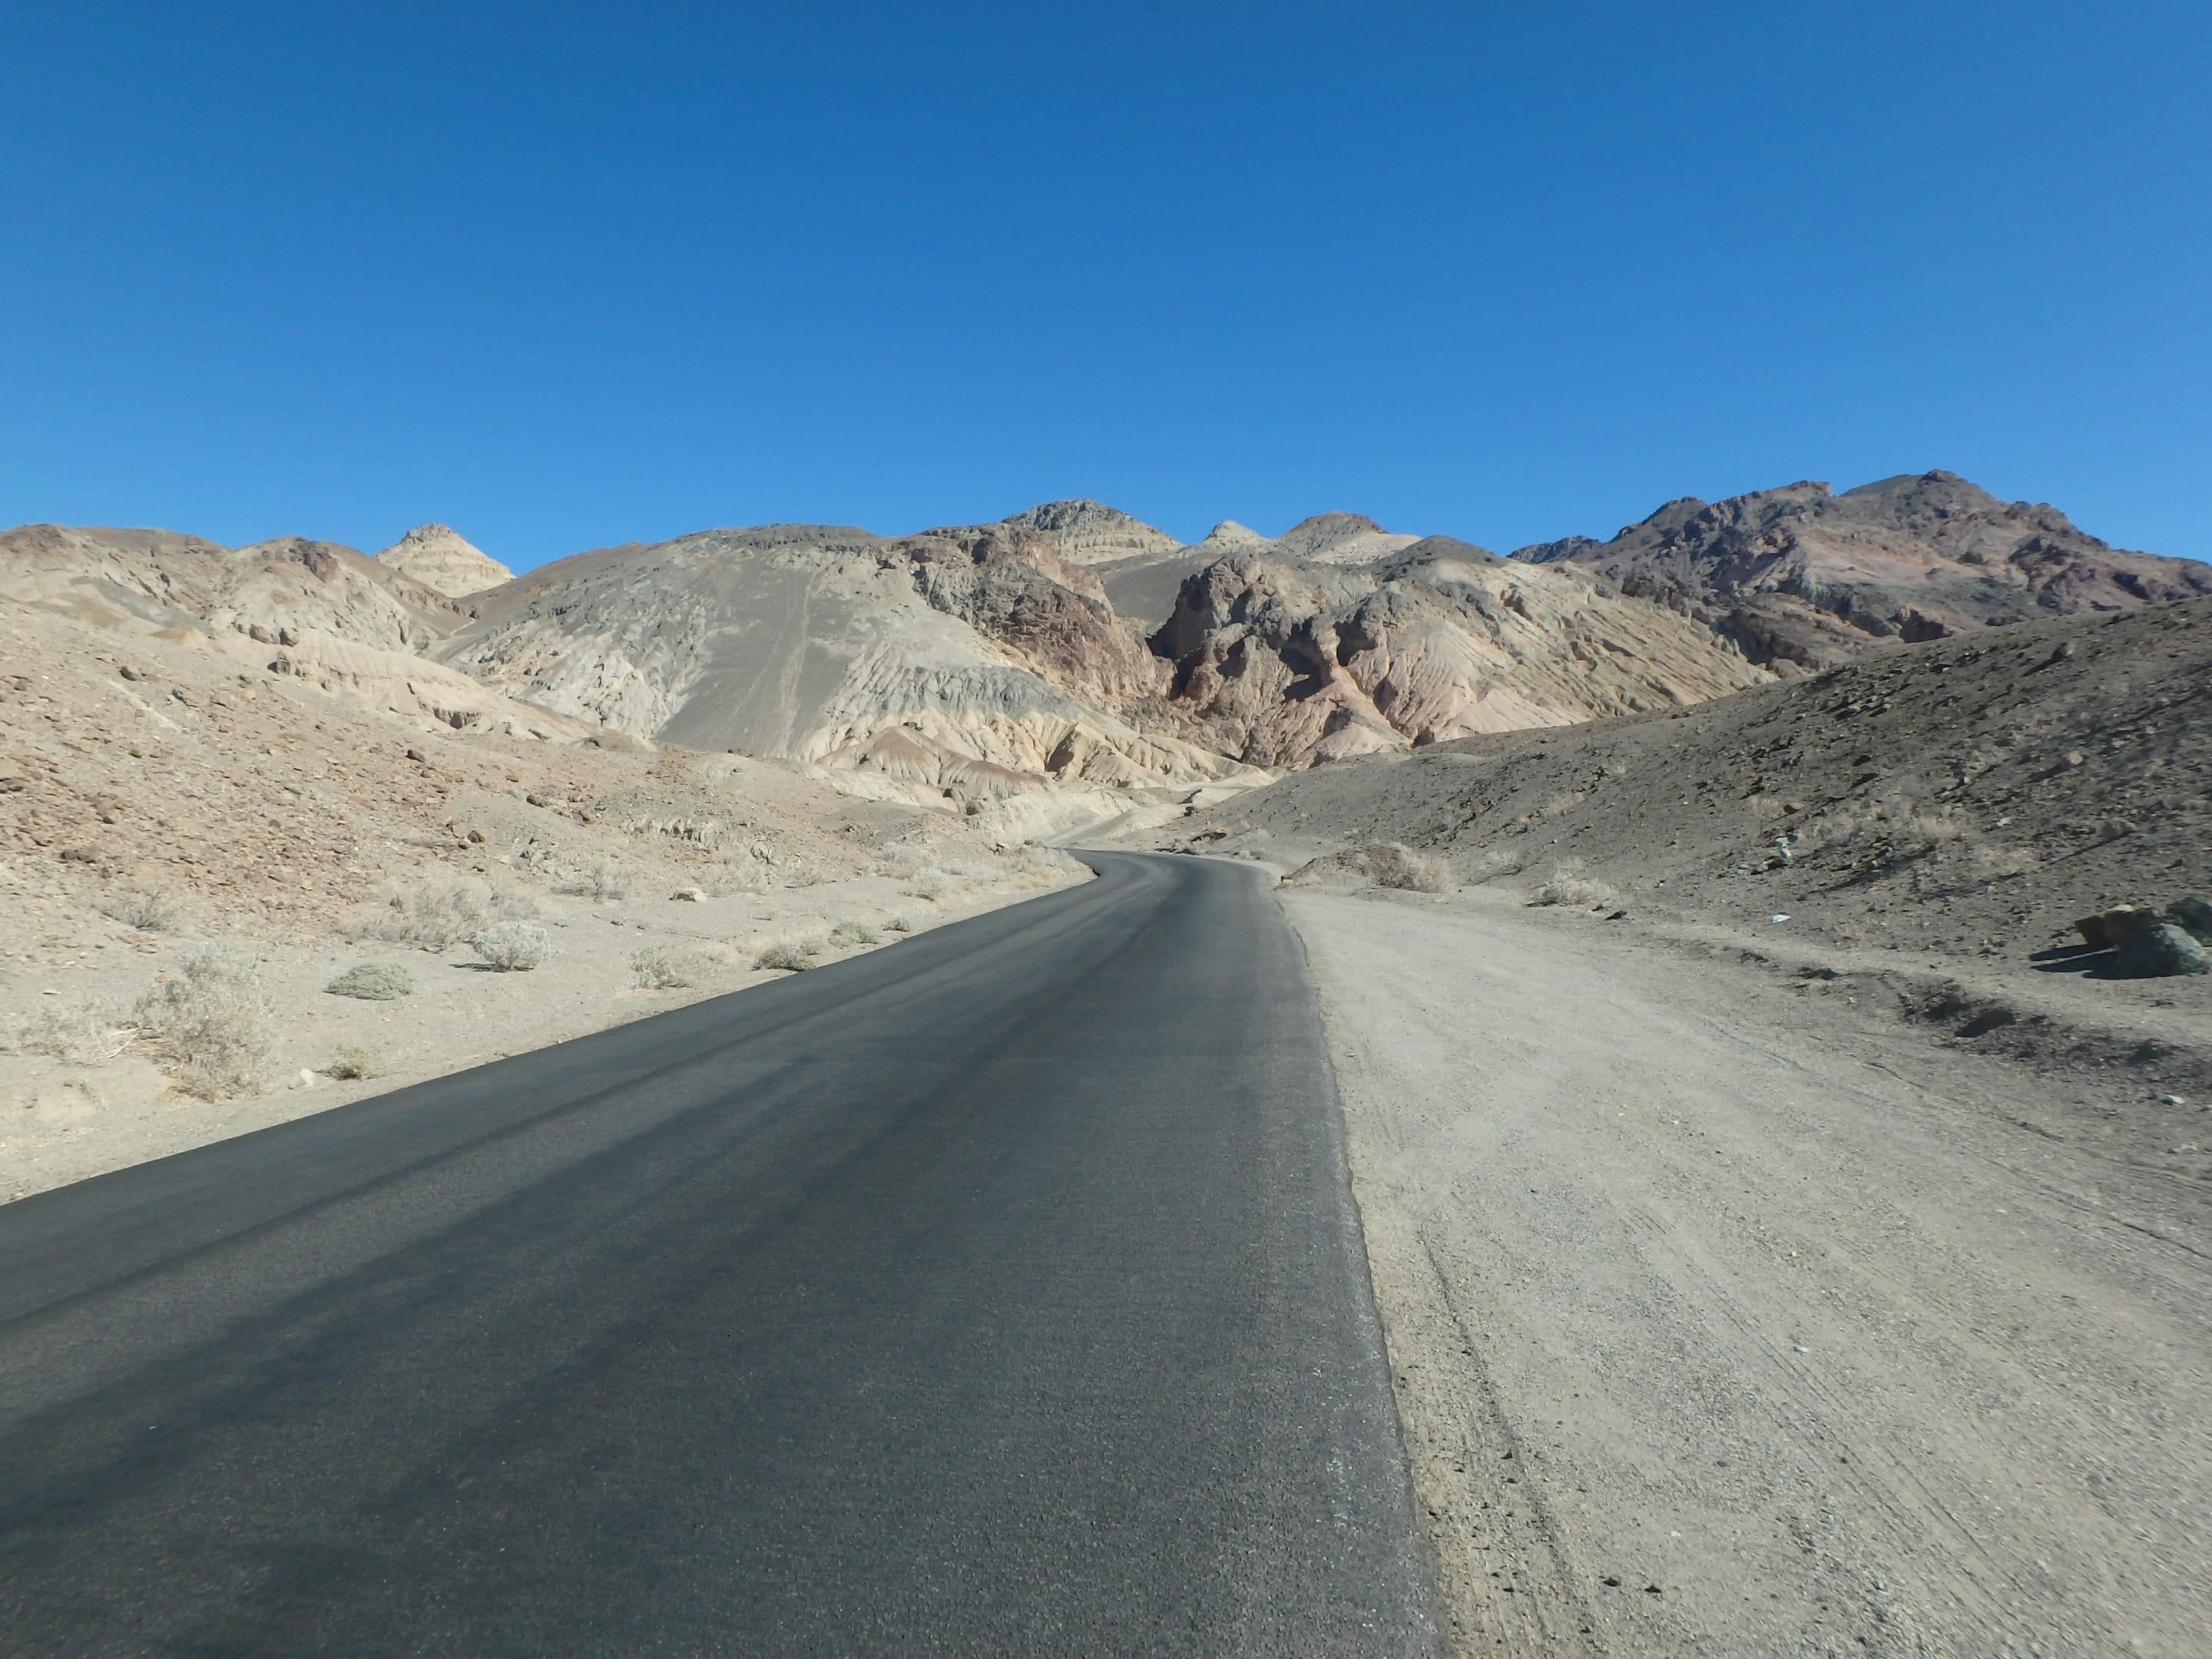 Mission 66 in Death Valley National Park